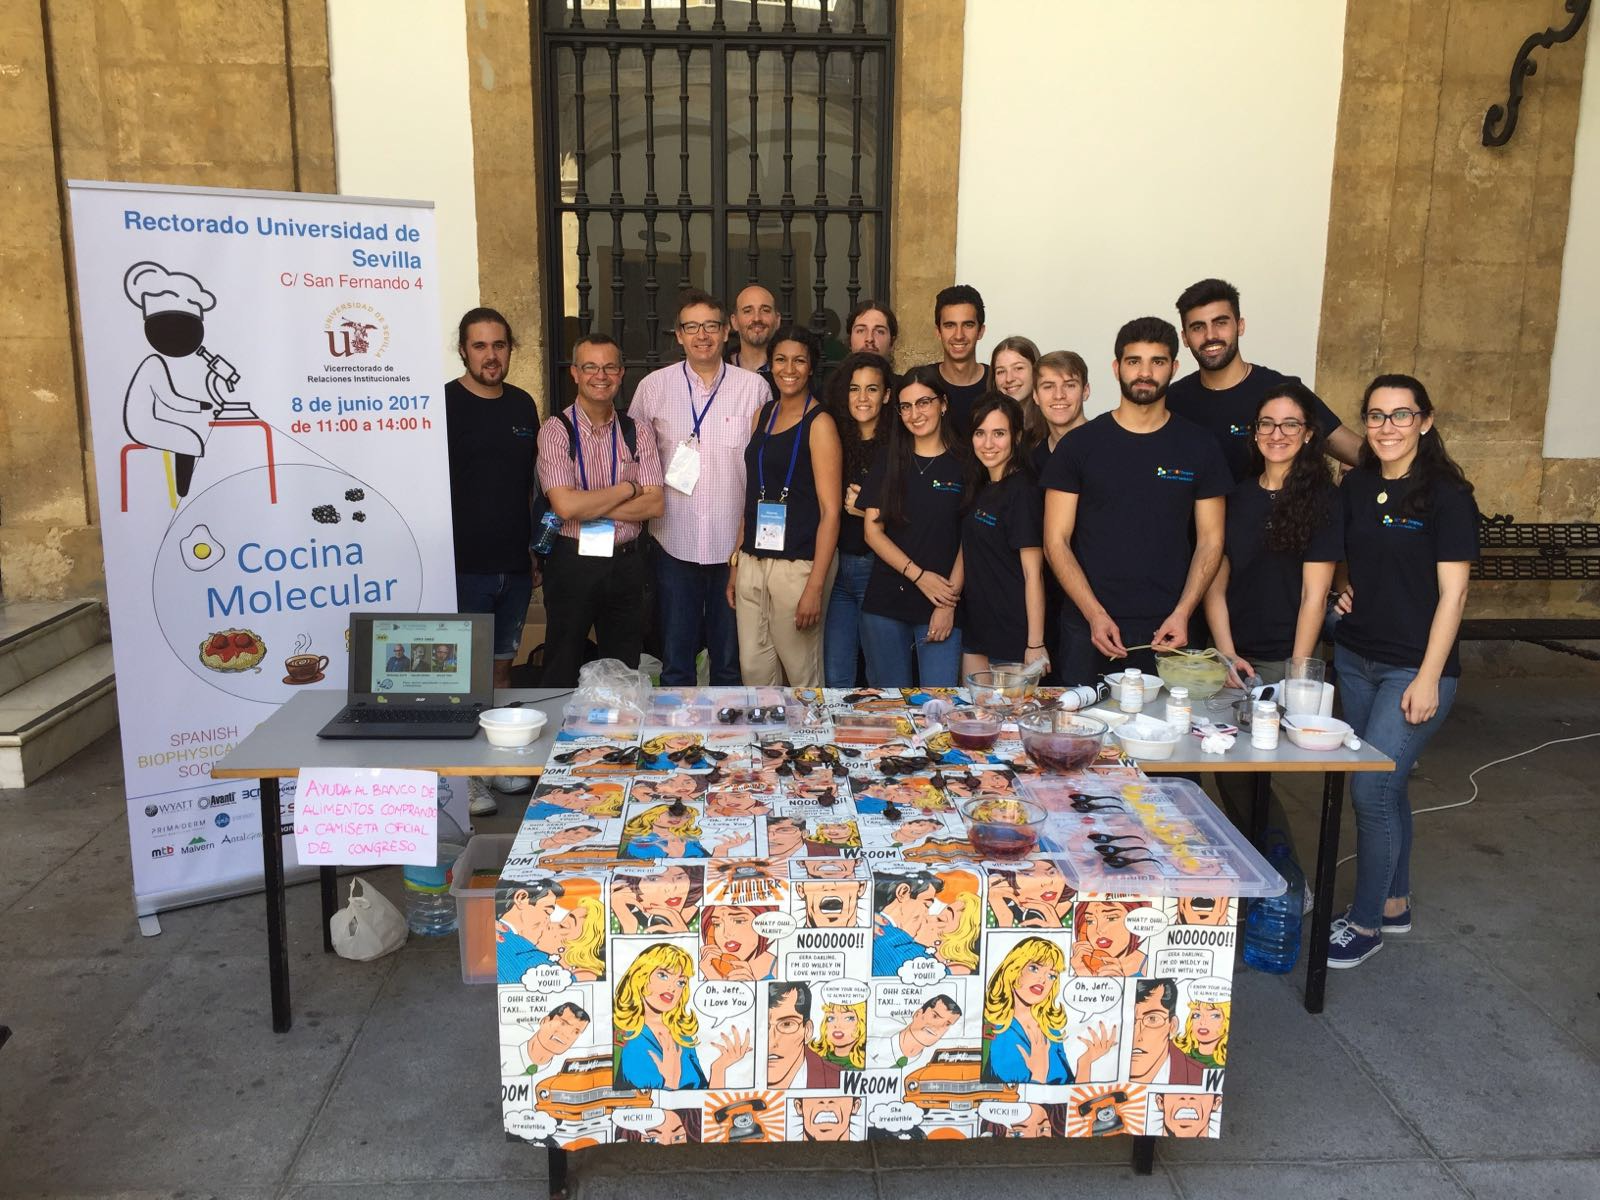 Biophysics in the City, aimed to bring Biophysics closer to Society.